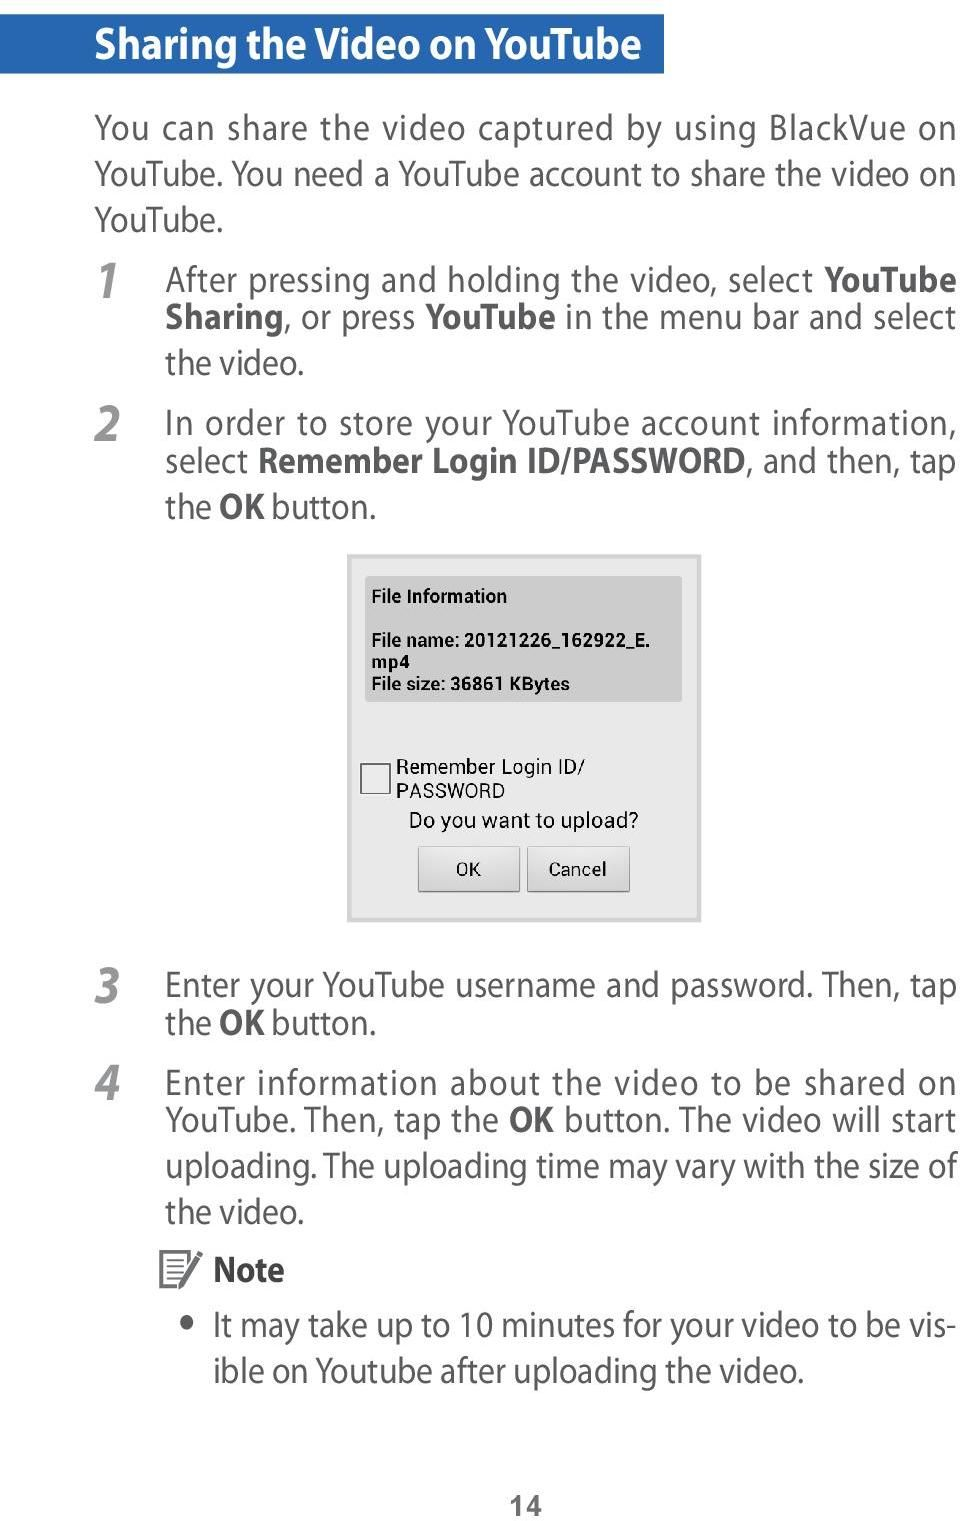 2 In order to store your YouTube account information, select Remember Login ID/PASSWORD, and then, tap the OK button. 3 Enter your YouTube username and password.